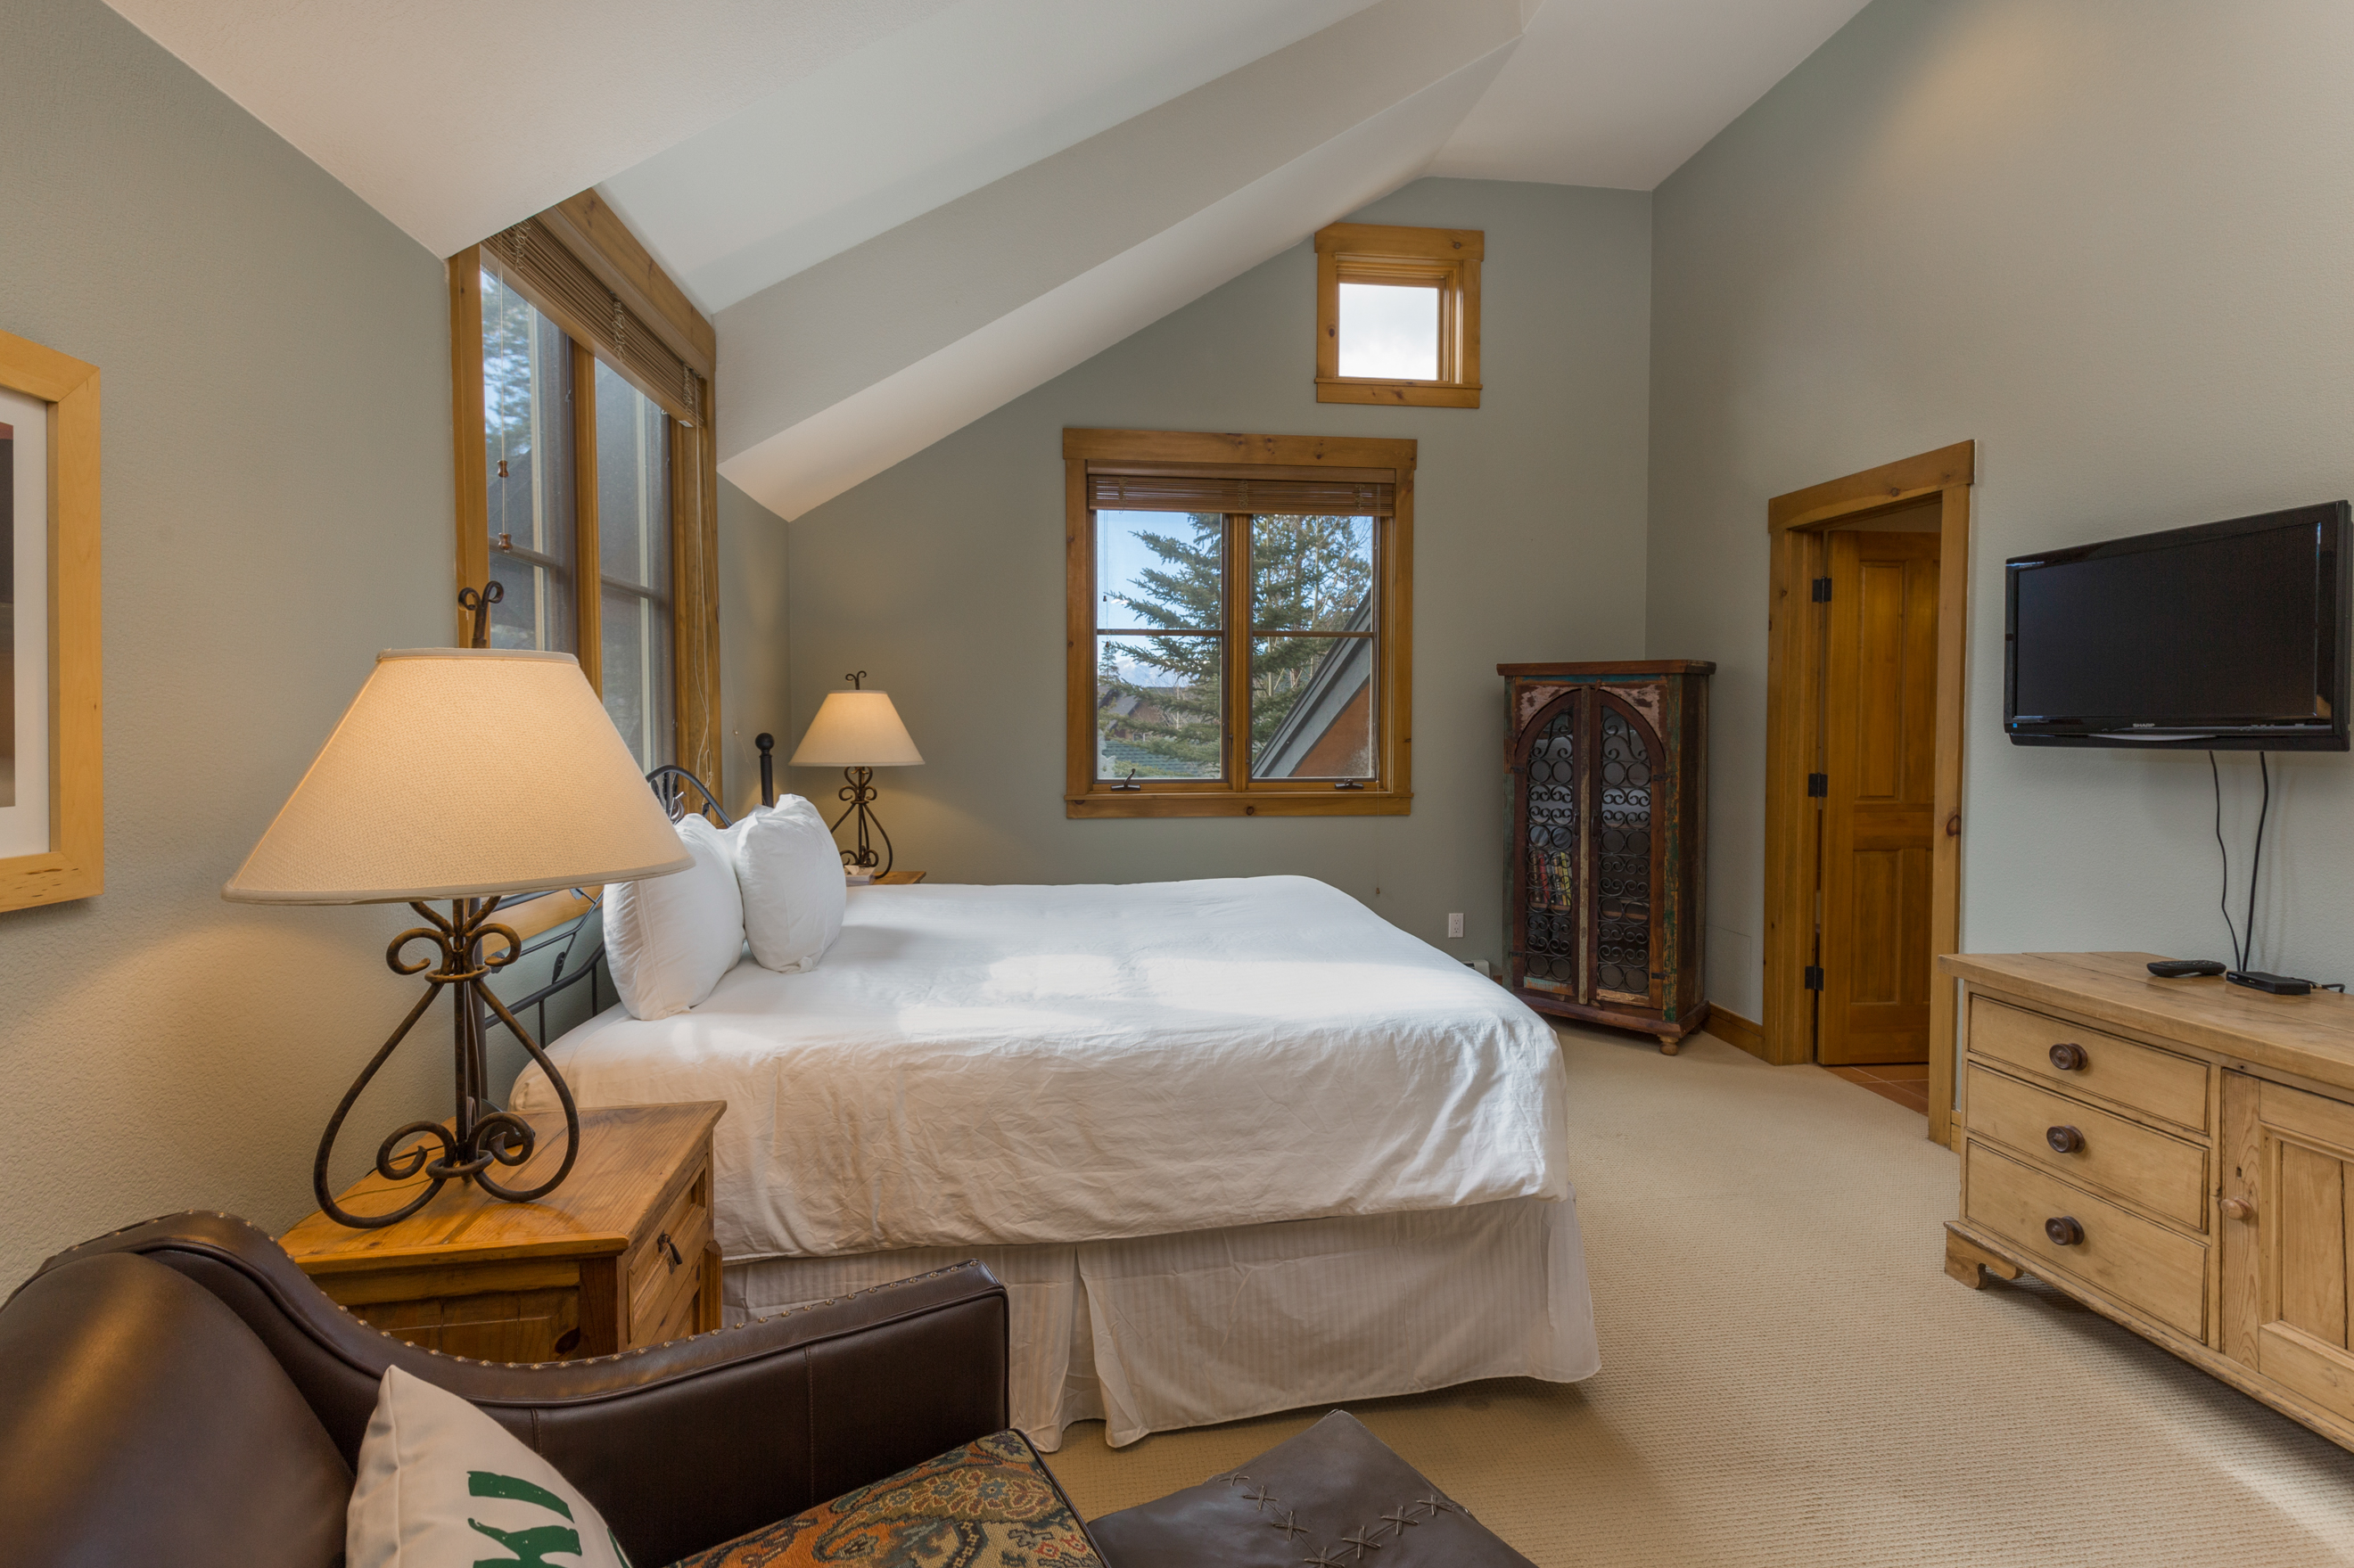 The master bedroom features a queen-sized bed, a mounted flat screen TV and a seating area.